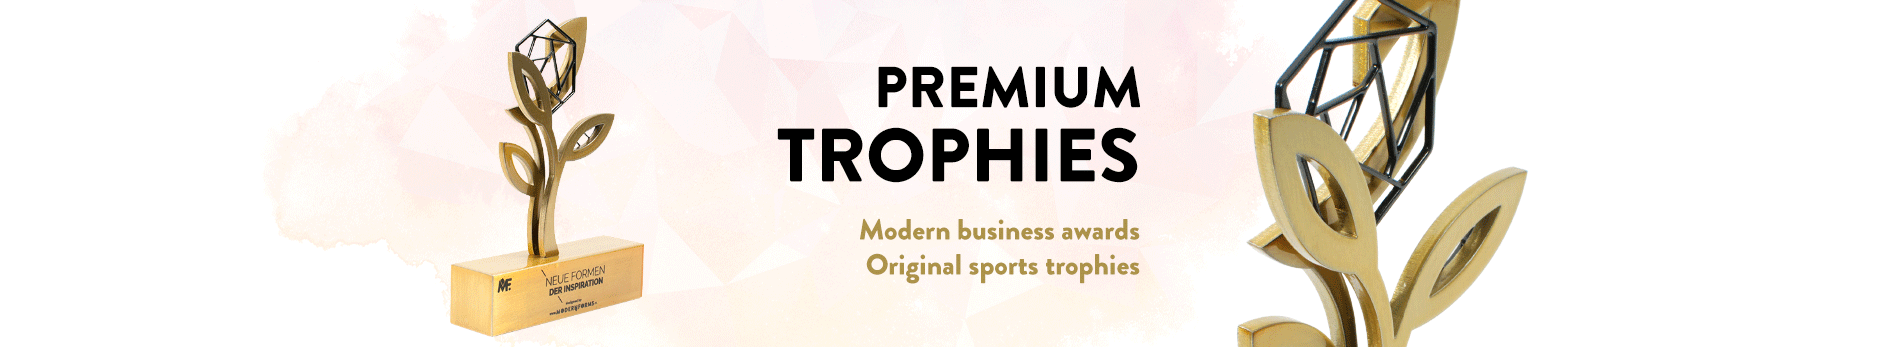 Premium sport and business trophies made by Modern Forms